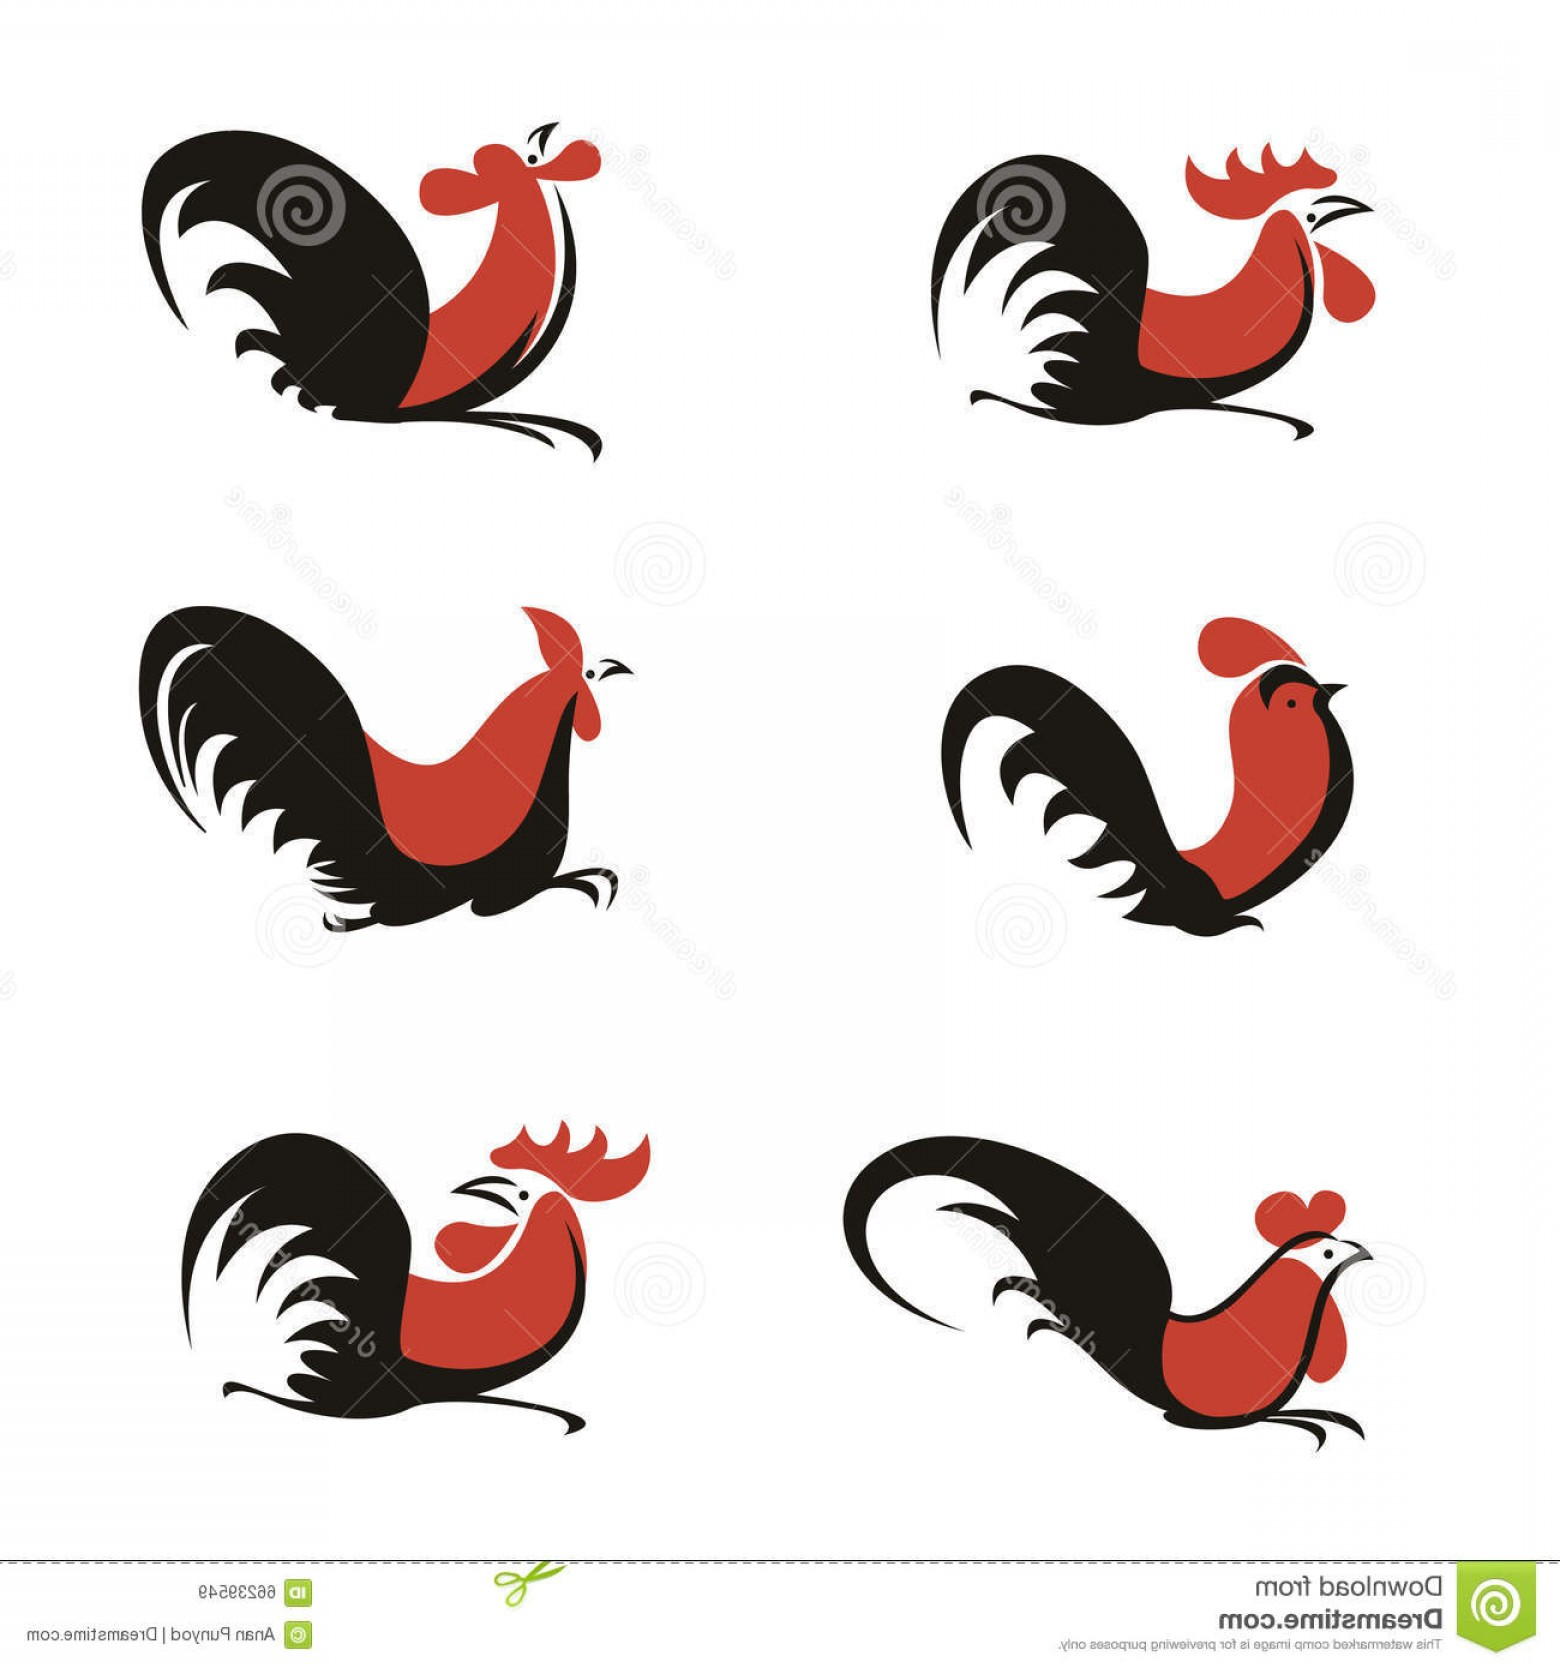 Poultry Vector Art: Stock Illustration Orange Black Chicken Rooster Logo Sign Vector Art Set Design Image